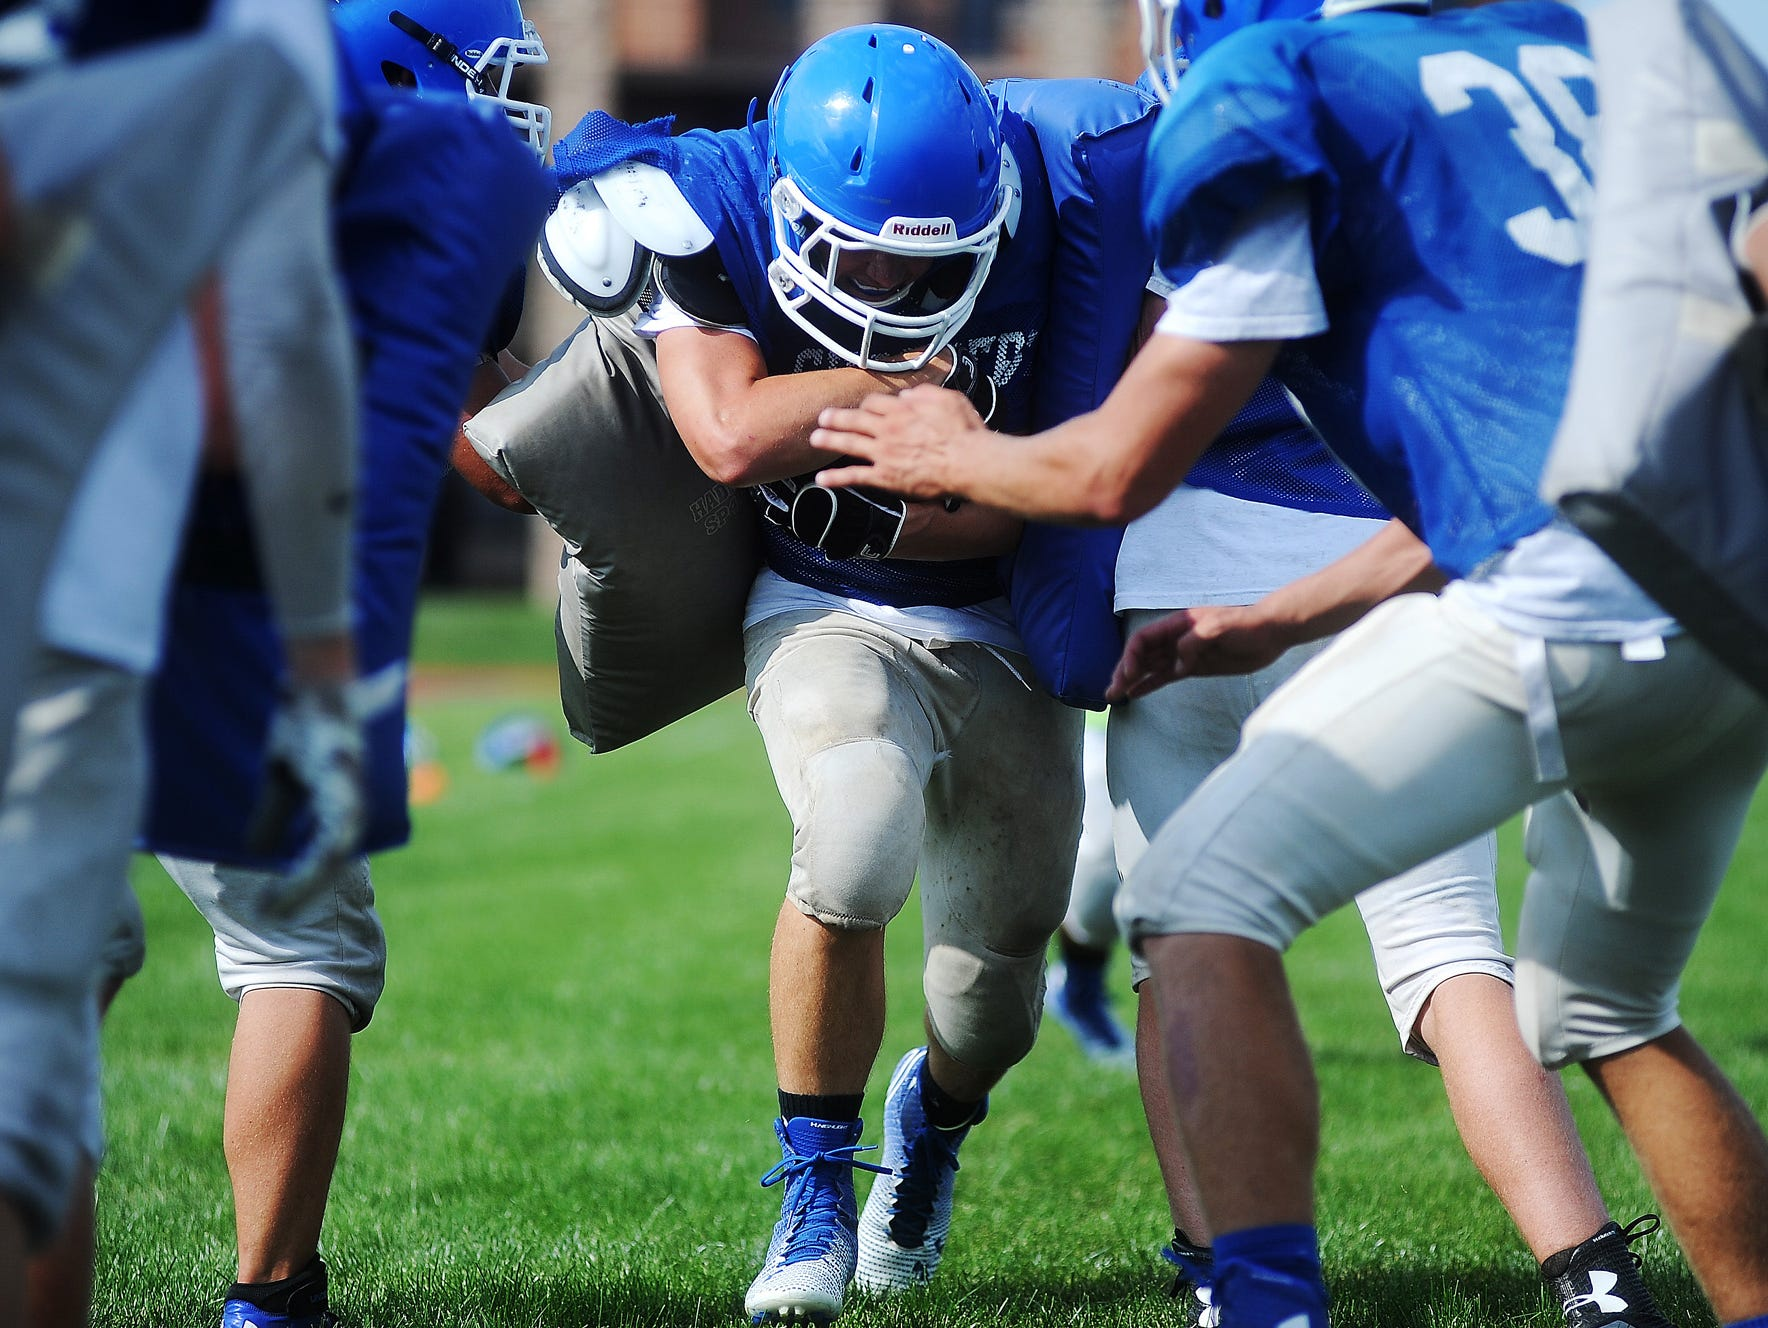 Sioux Falls Christian's Keegan Van Egdom carries the ball as part of a drill during a practice on Thursday, Aug. 21, 2014, at Bob Young Field in Sioux Falls, S.D.